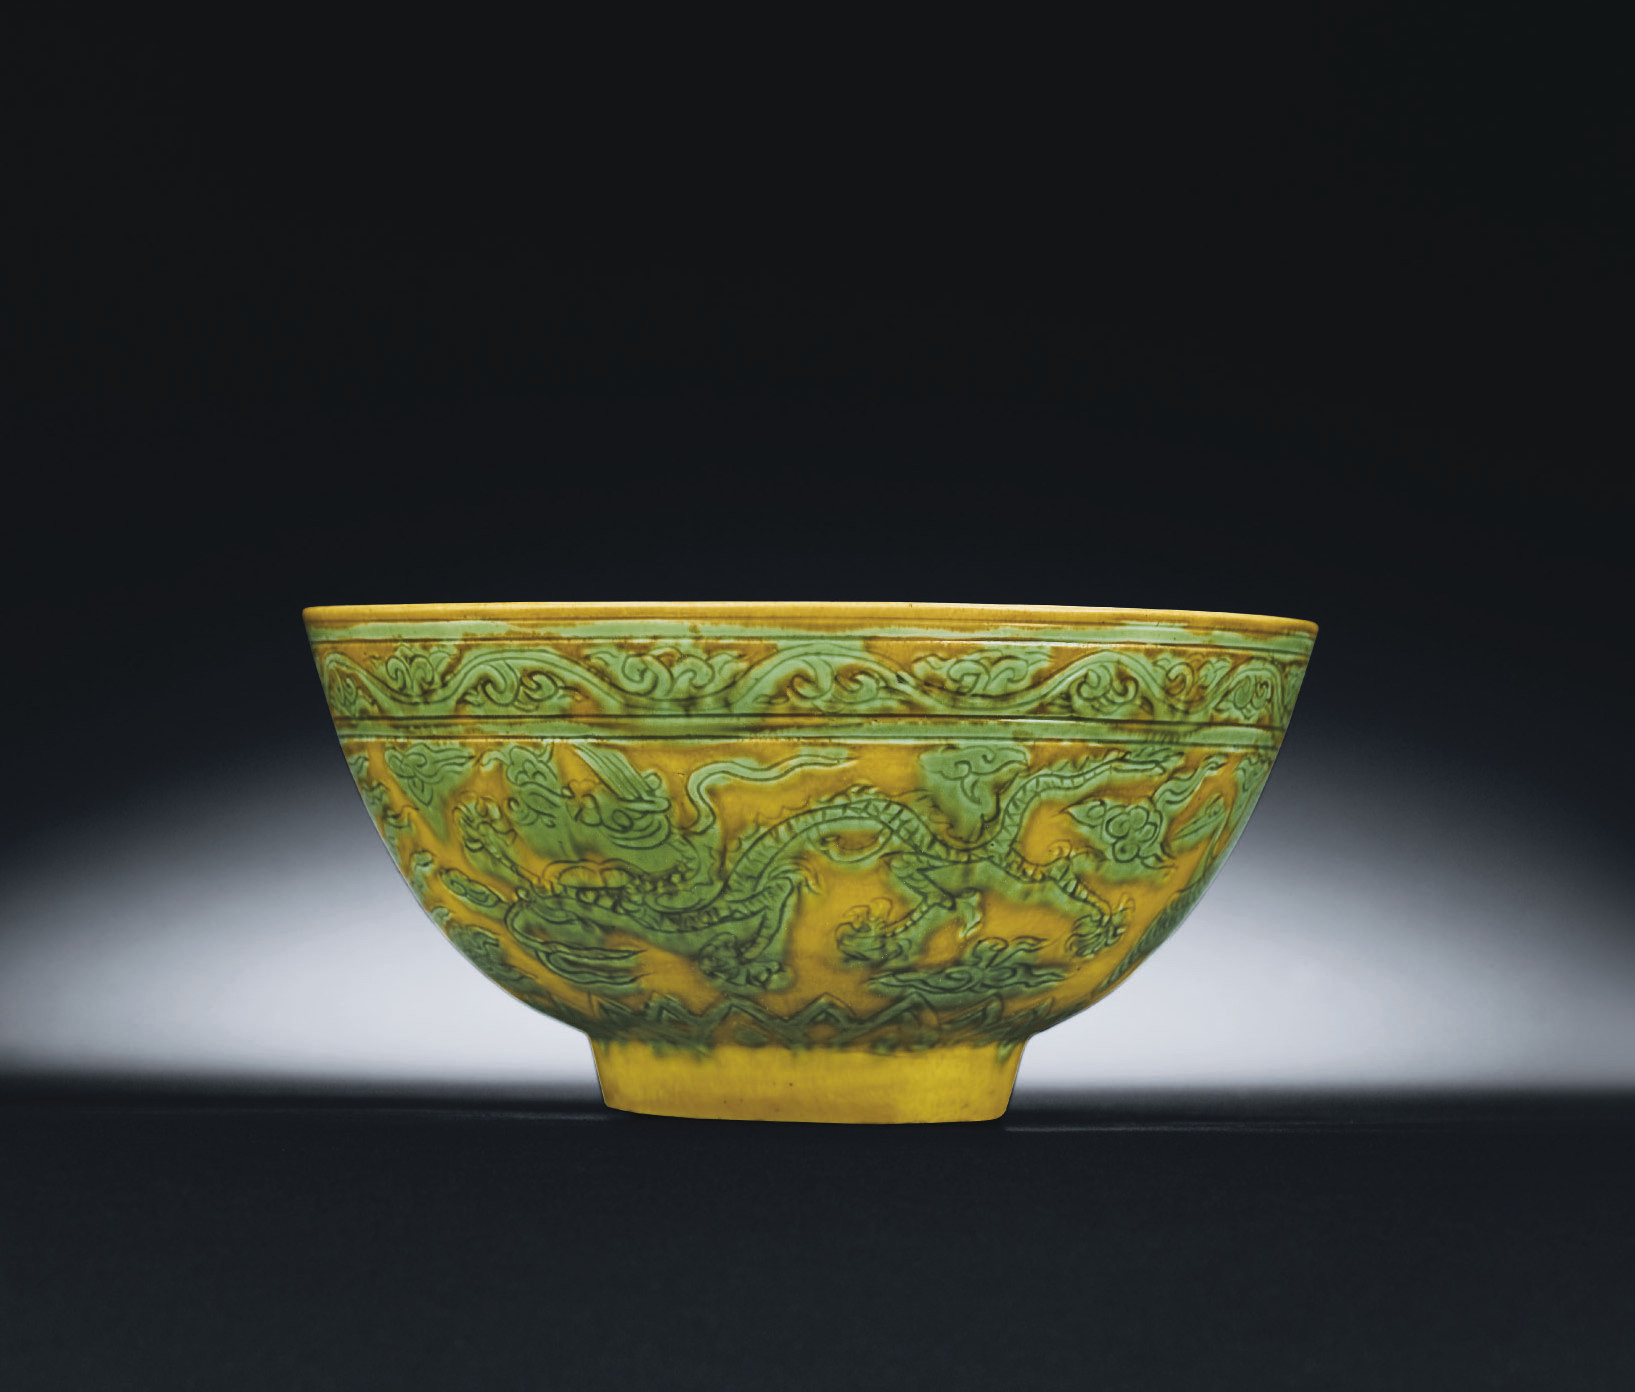 A RARE MING GREEN AND YELLOW I